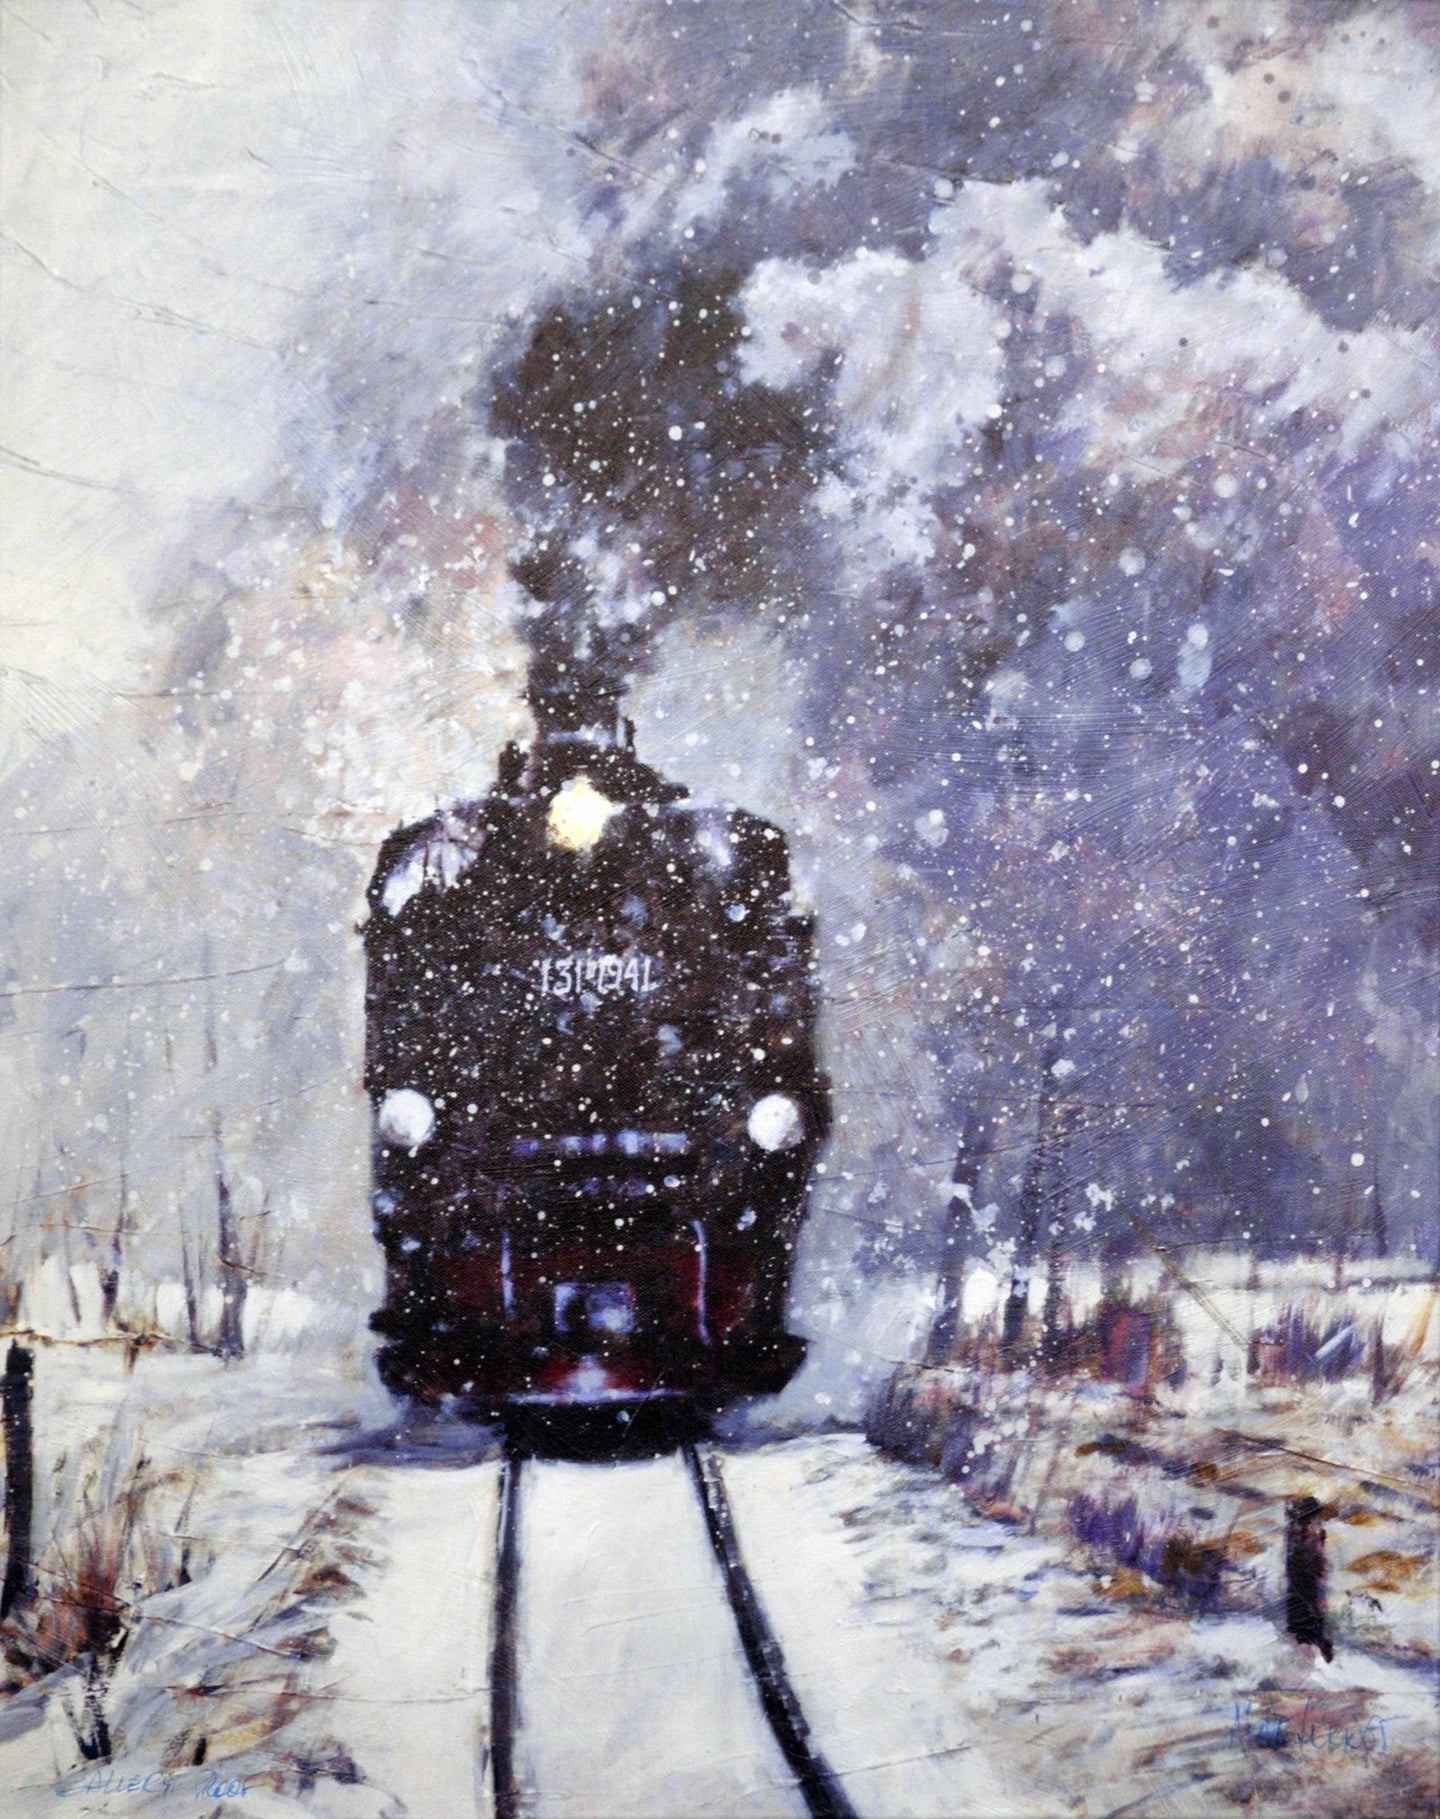 Winter Express By Aldo Luongo